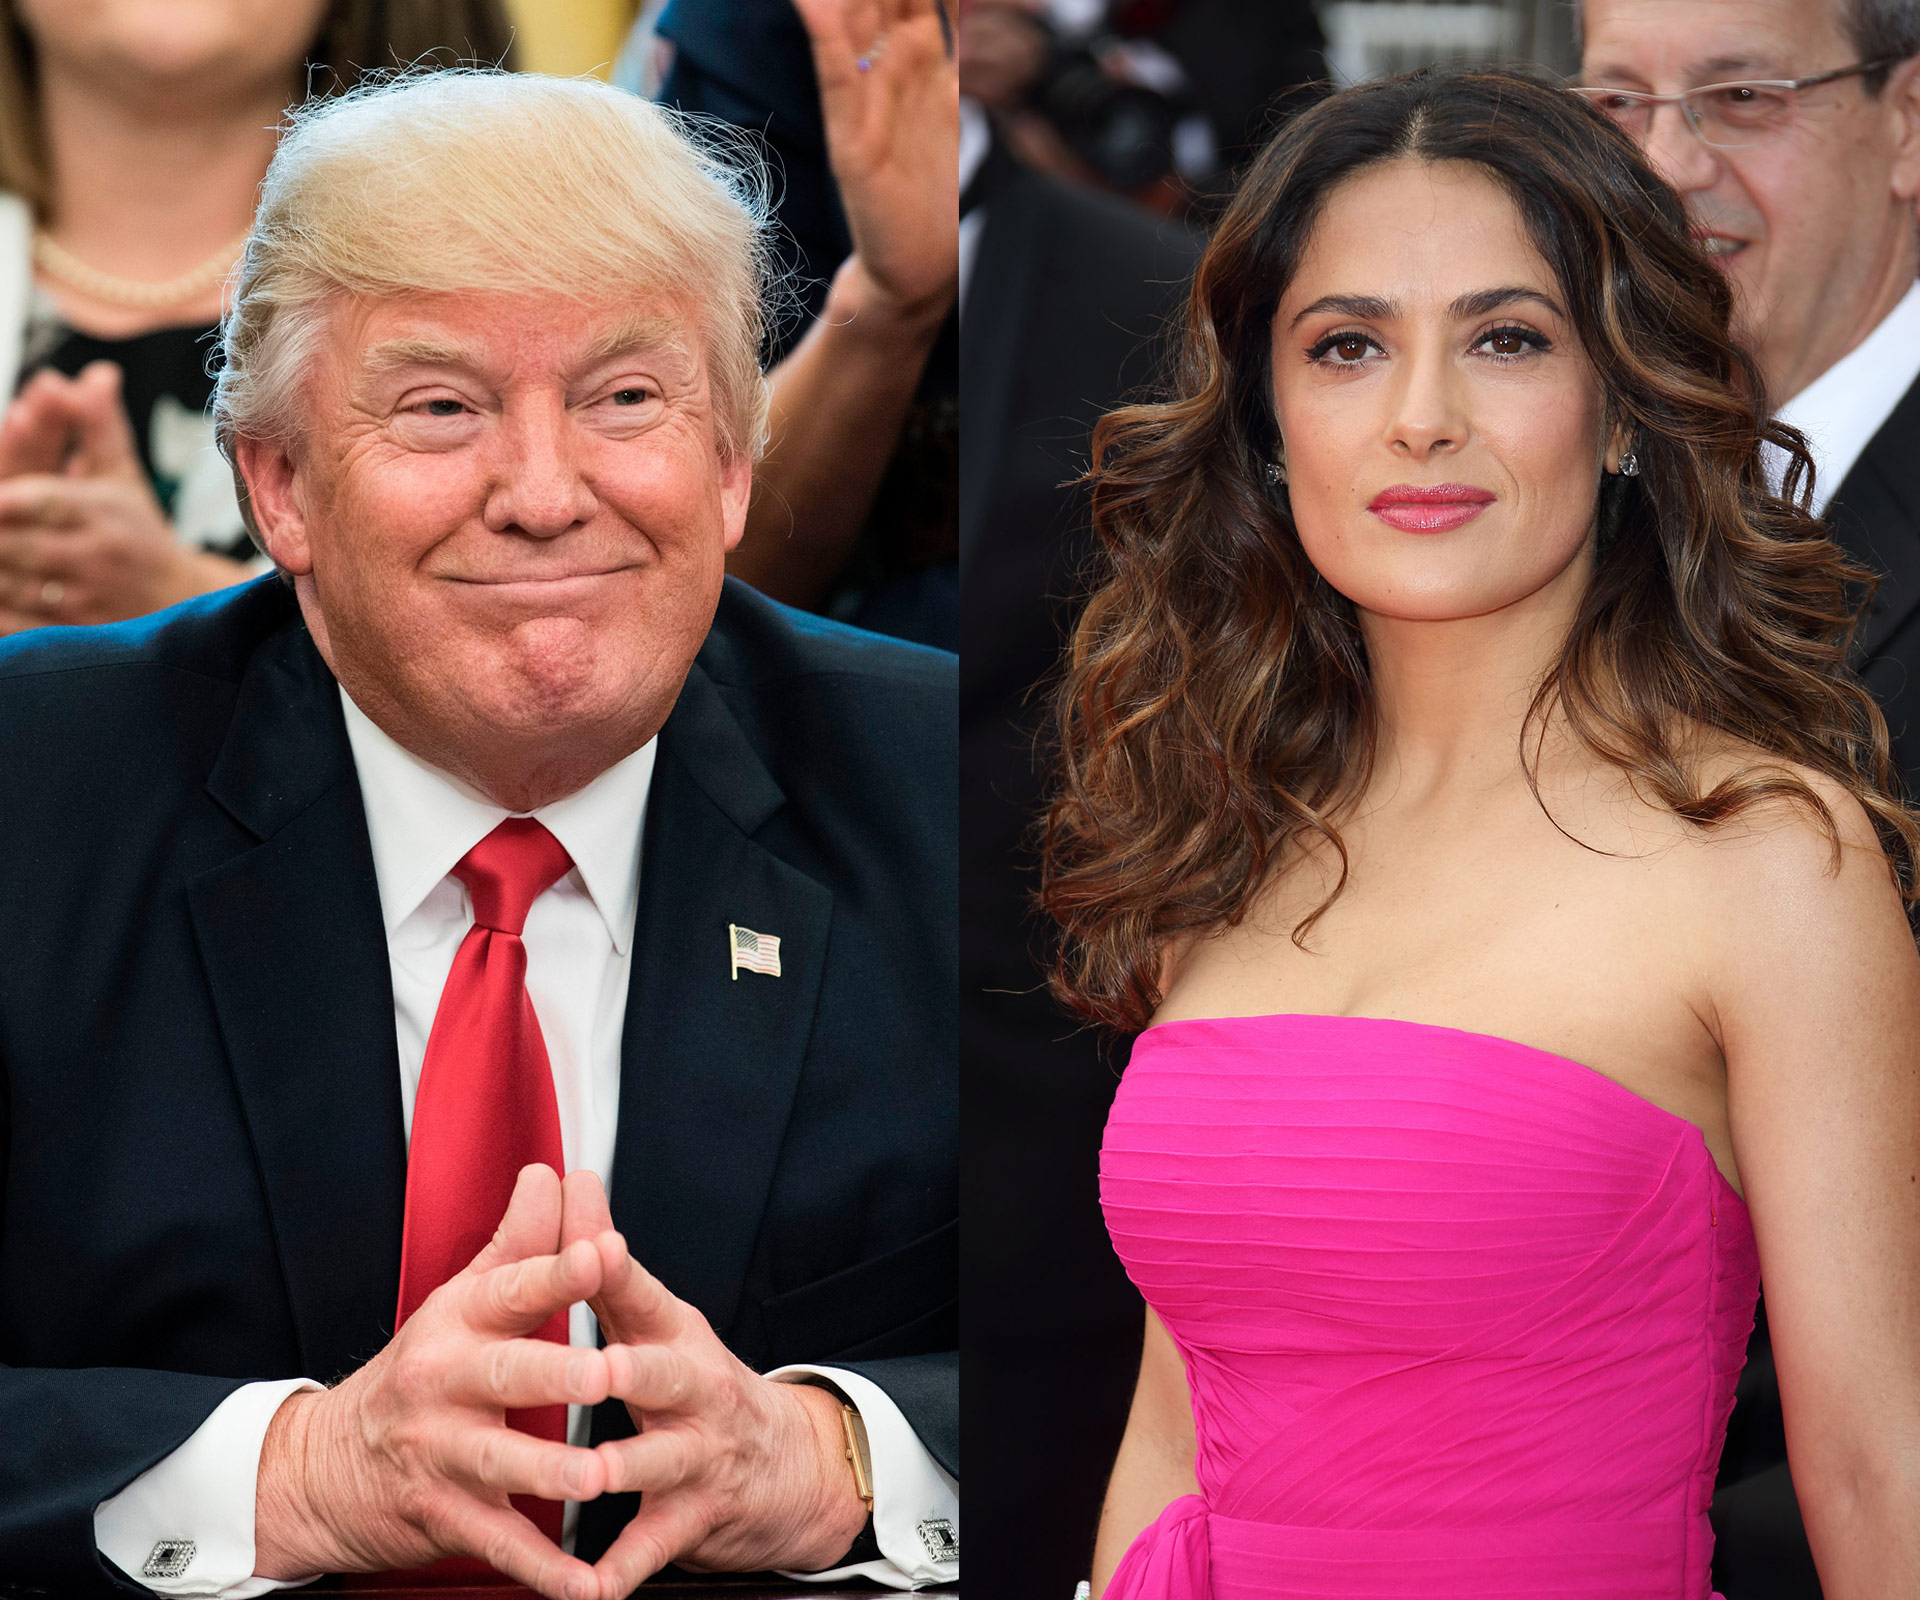 Salma Hayek reveals Donald Trump once asked her out